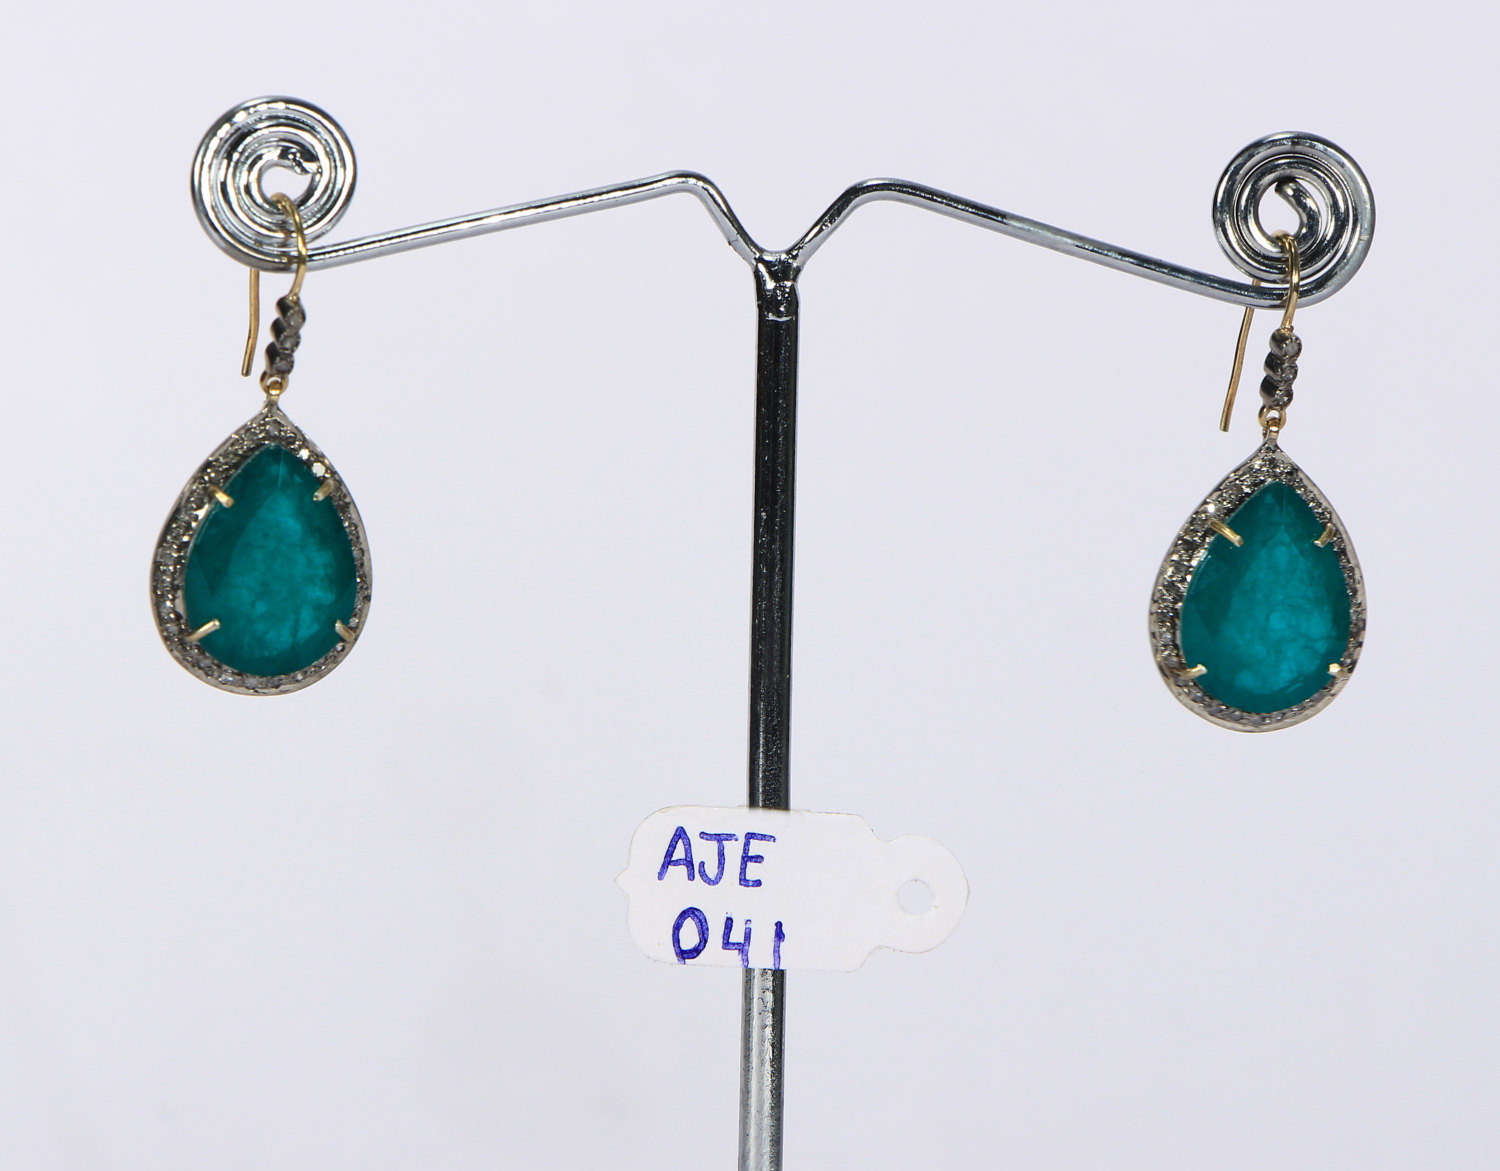 Dangling Earrings 14kt Gold .925 Sterling Silver with Emerald & Pave Diamonds